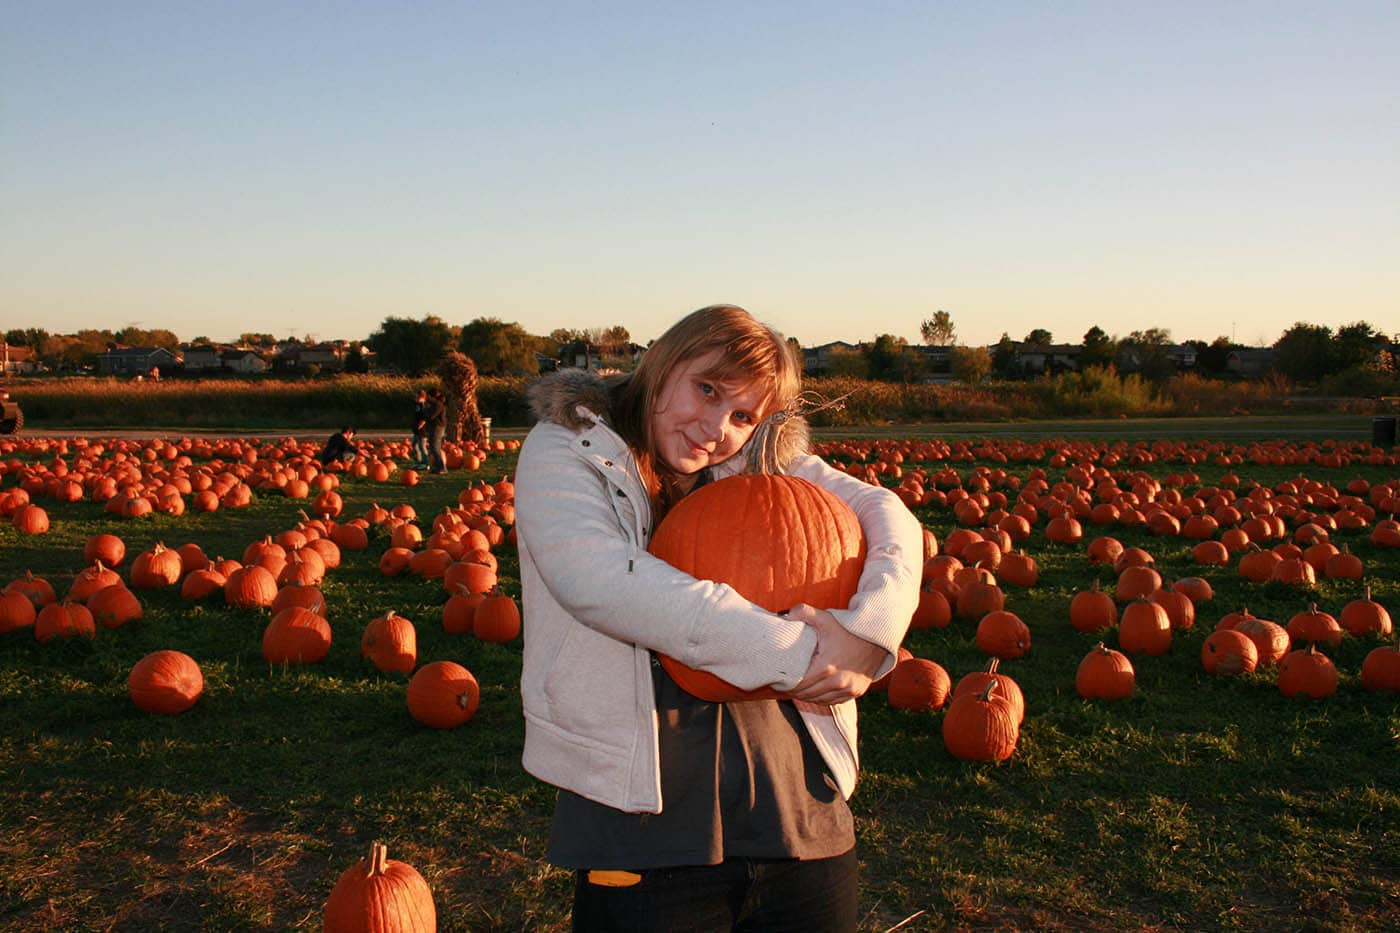 Bengtson's Pumpkin Farm in Homer Glen, Illinois.